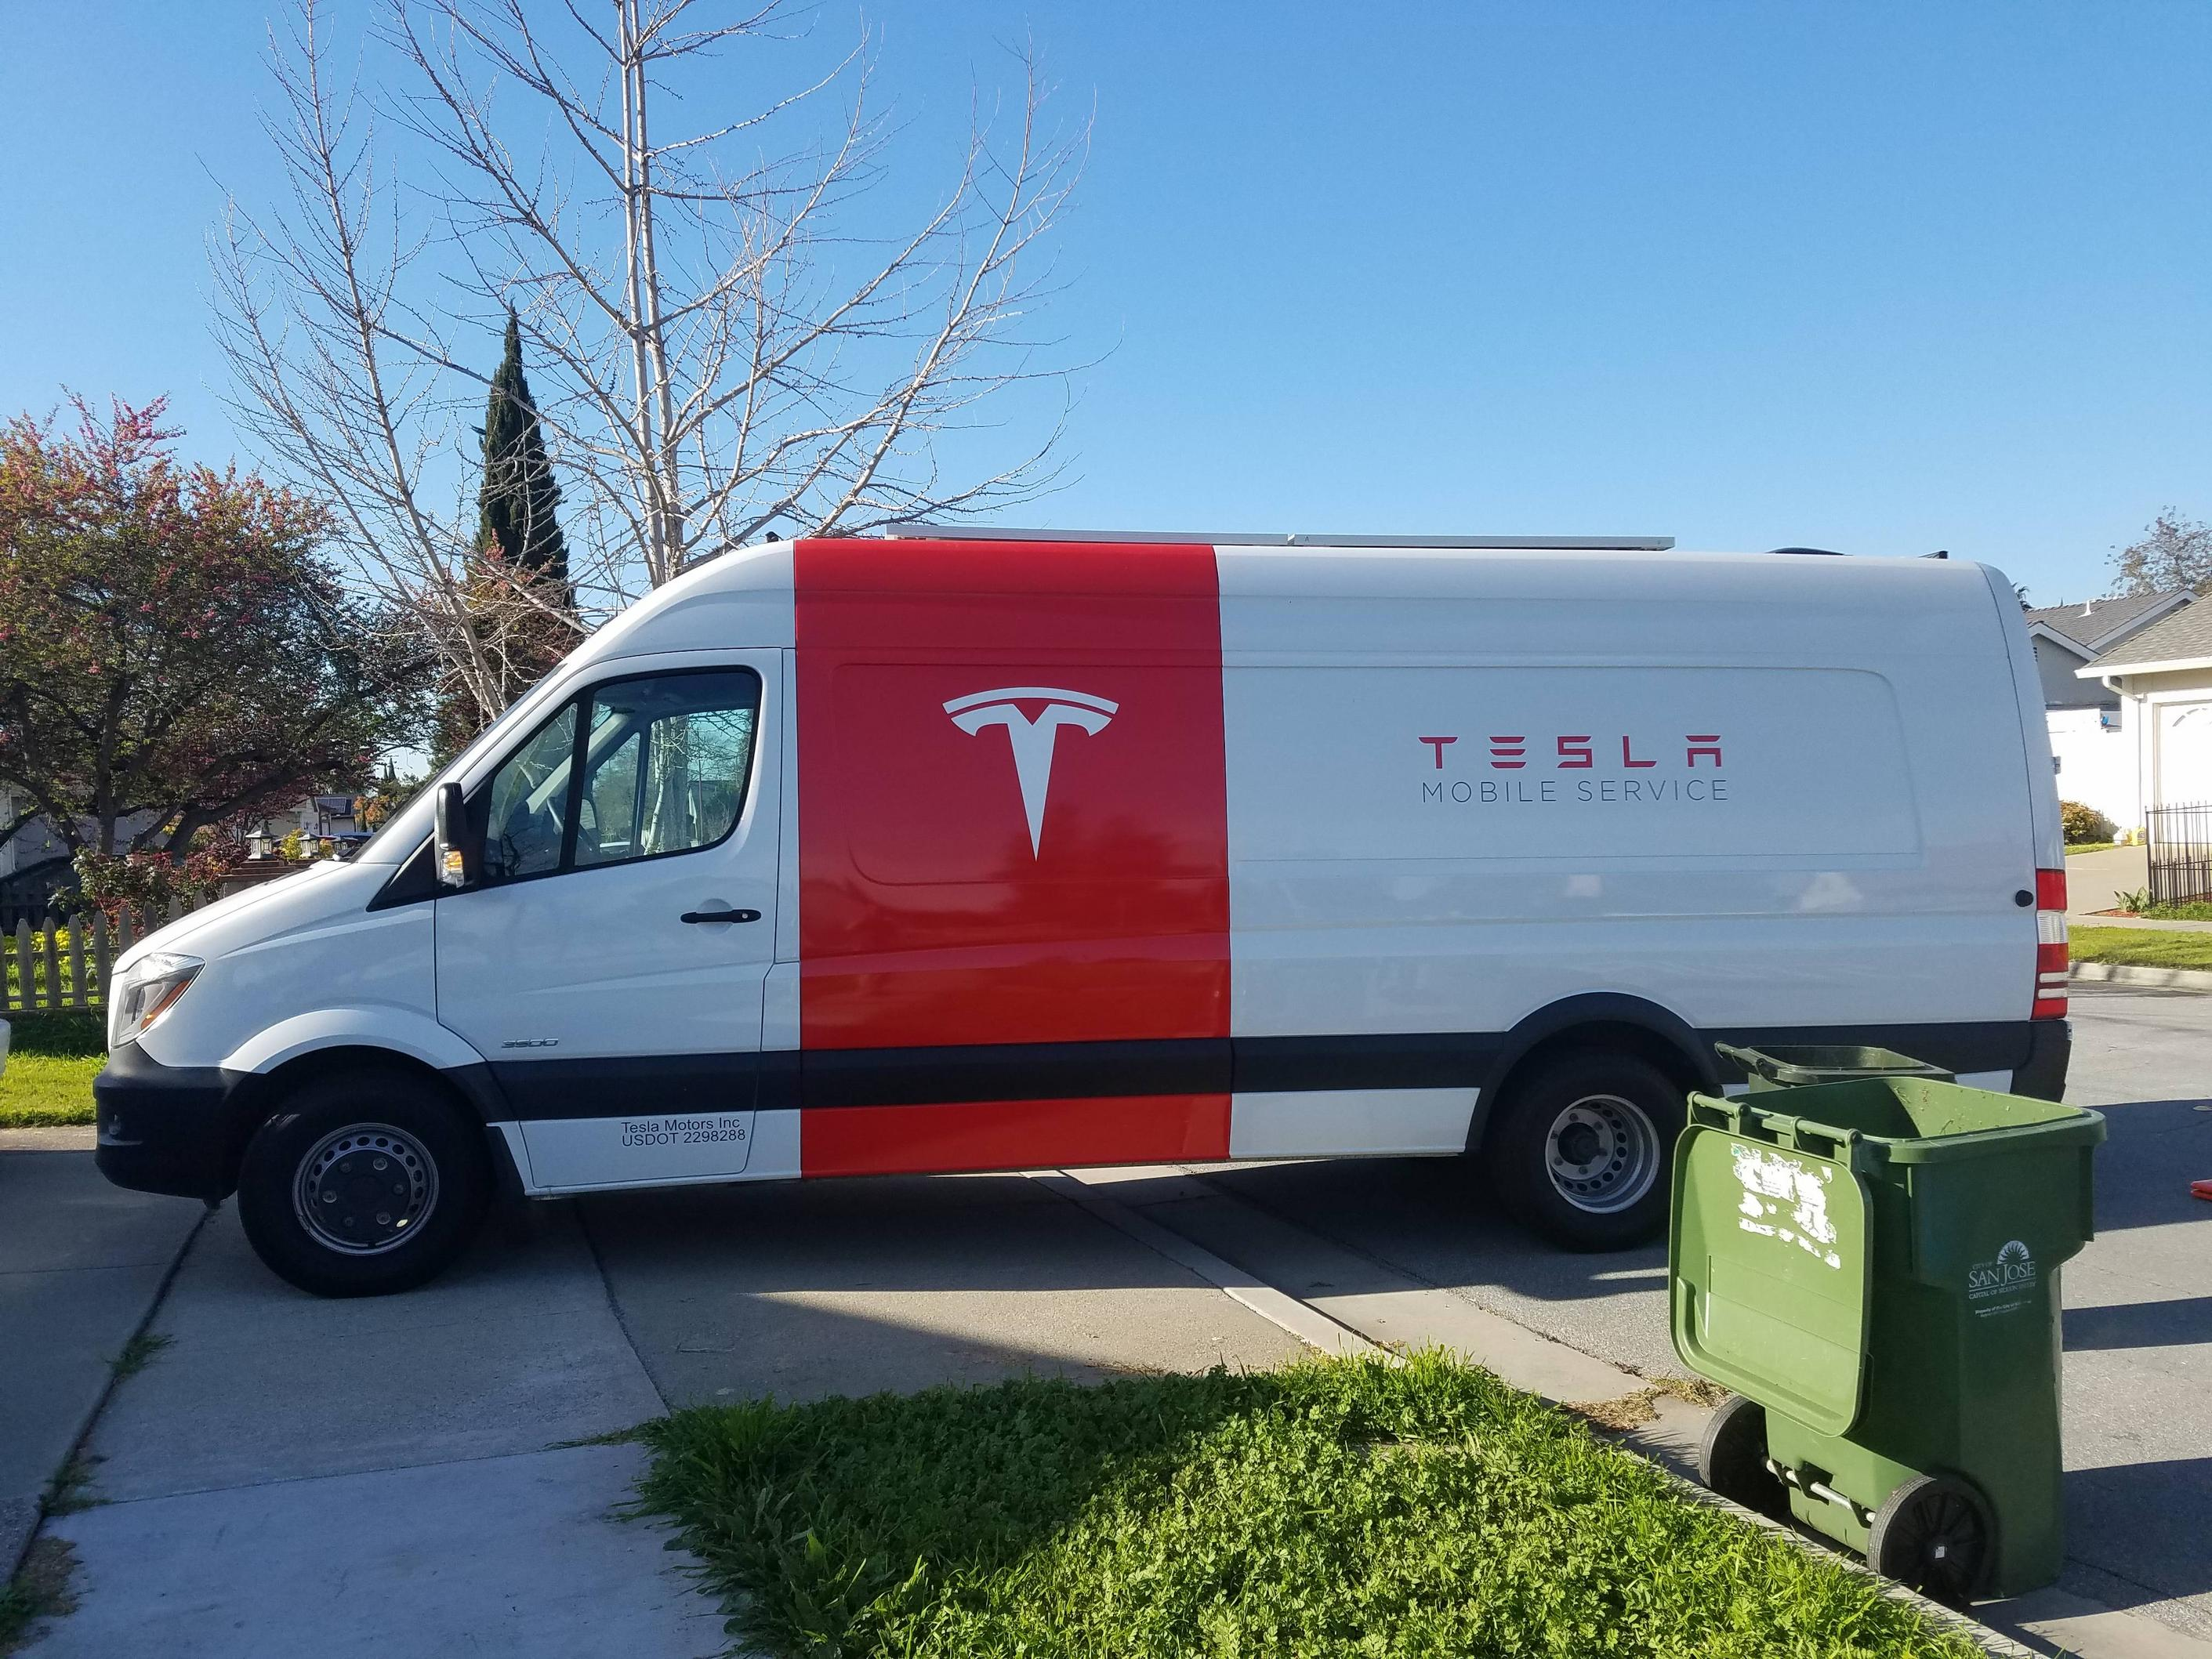 Tesla launches Mobile Tire Service program in San Francisco